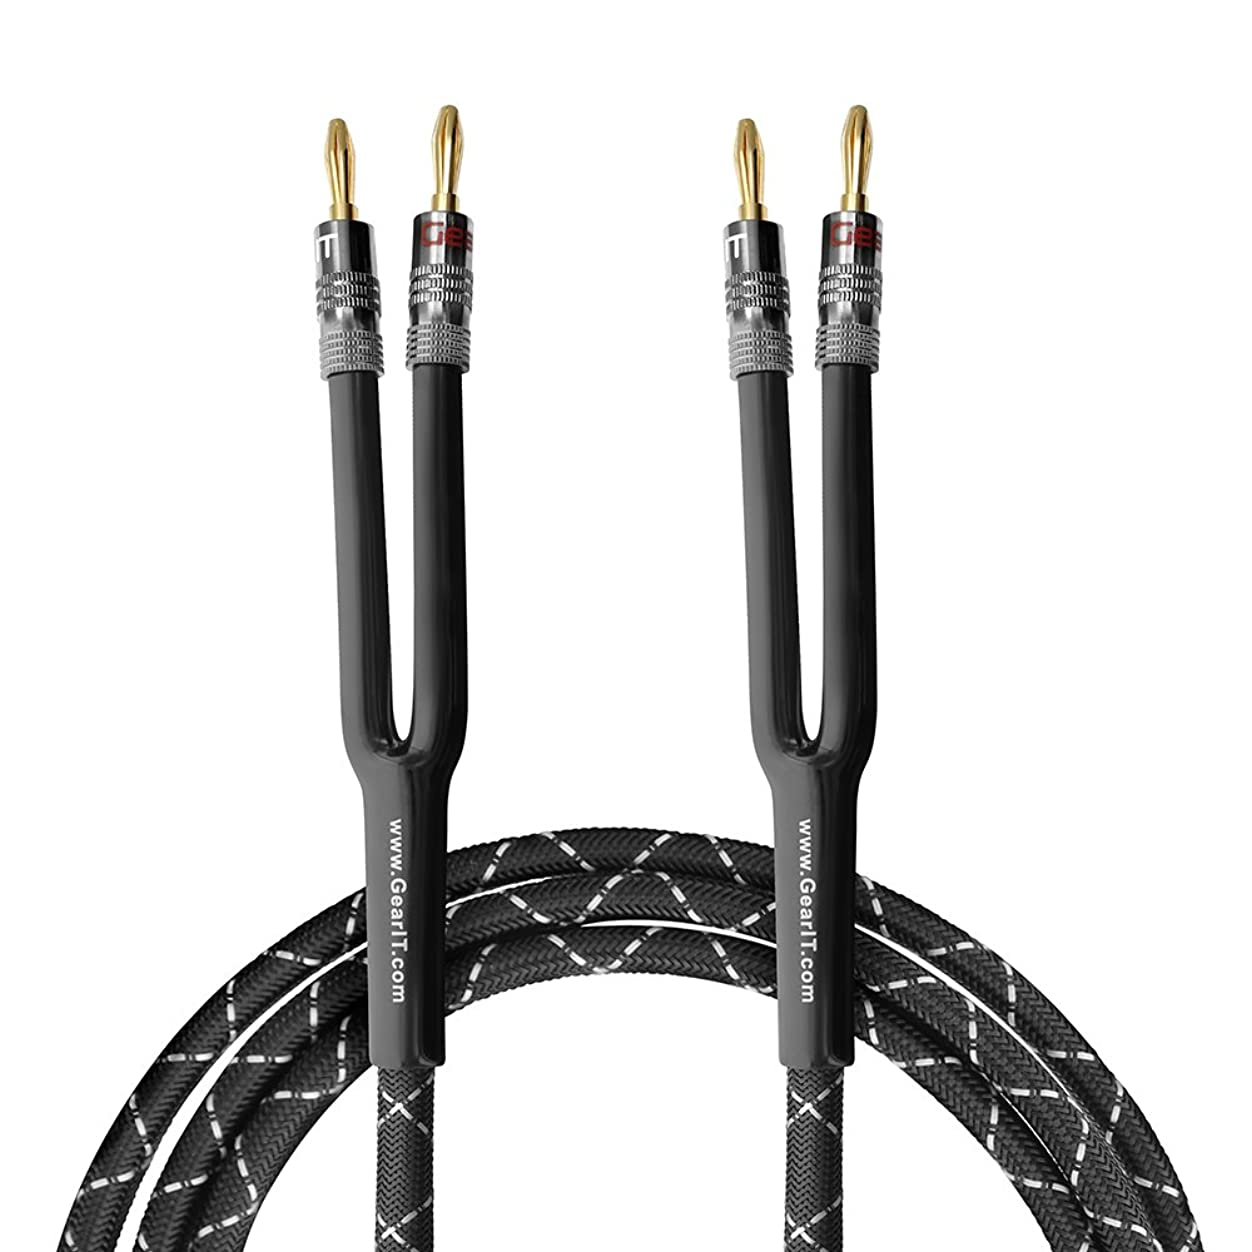 GearIT 12AWG Premium Heavy Duty Braided Speaker Wire (35 Feet) with Dual Gold Plated Banana Plug Tips - Oxygen-Free Copper (OFC) Construction, Black whyr549296633